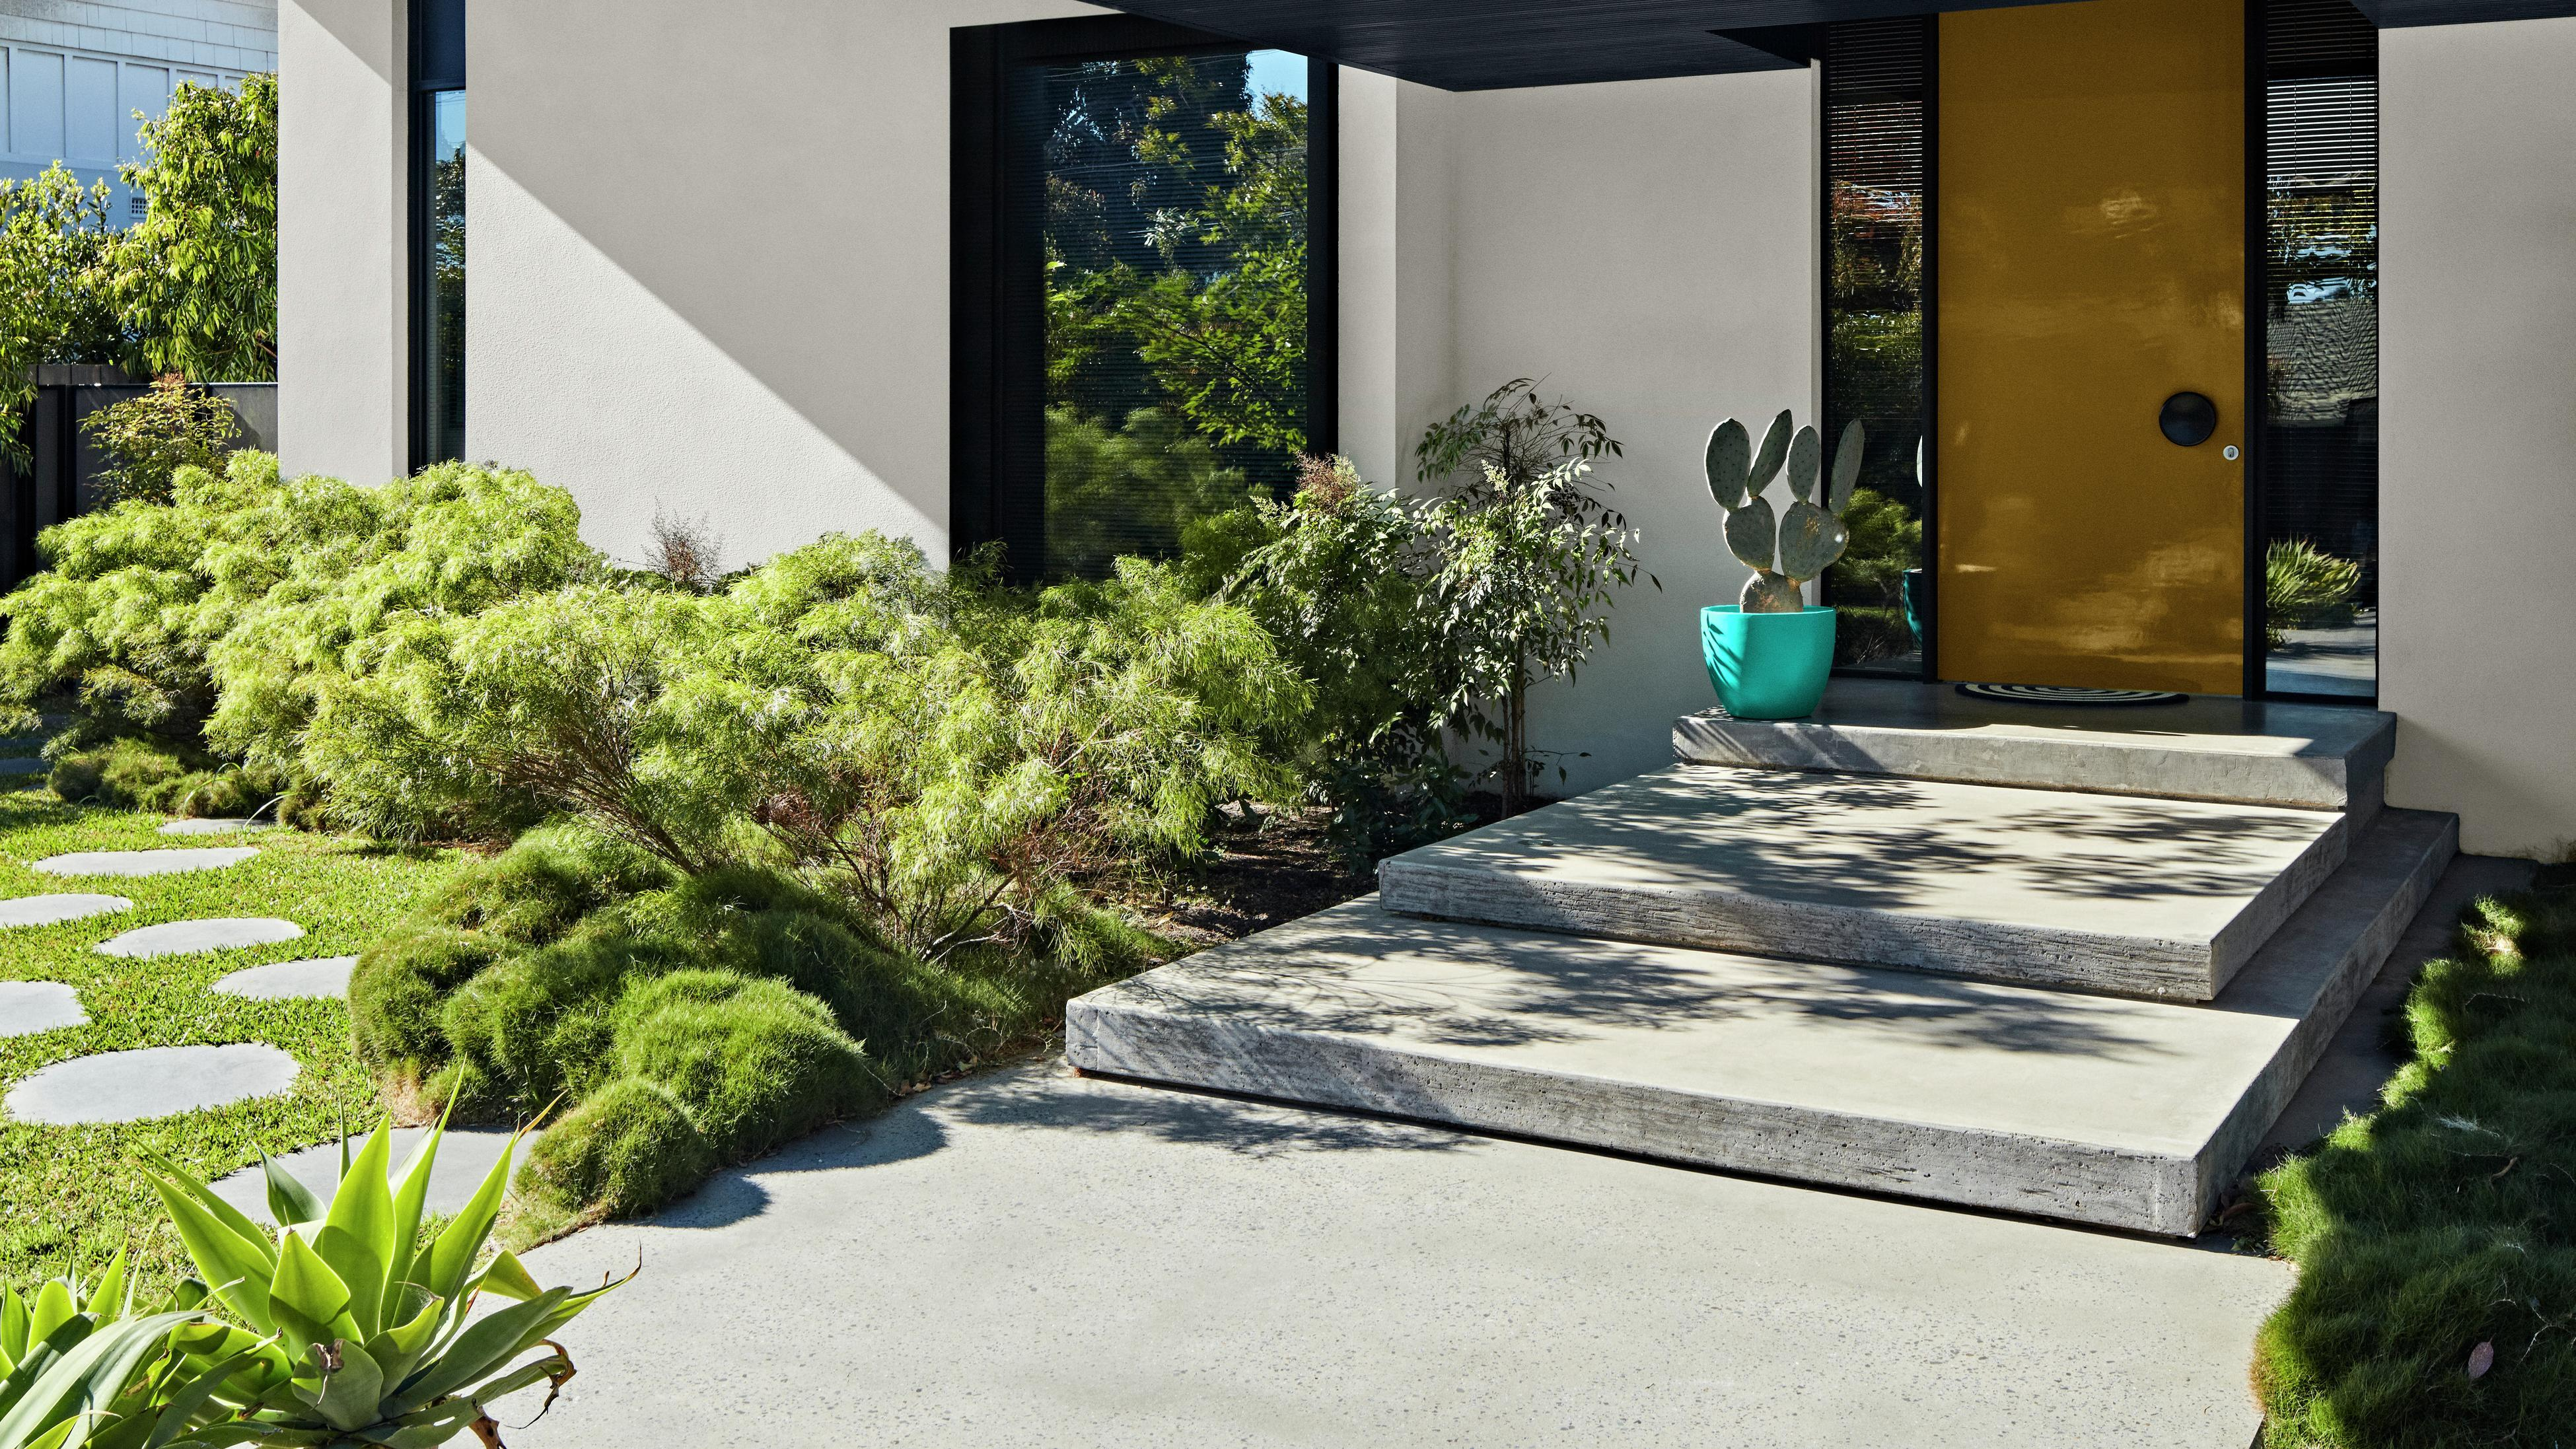 Outside of a modern home with plants in front.